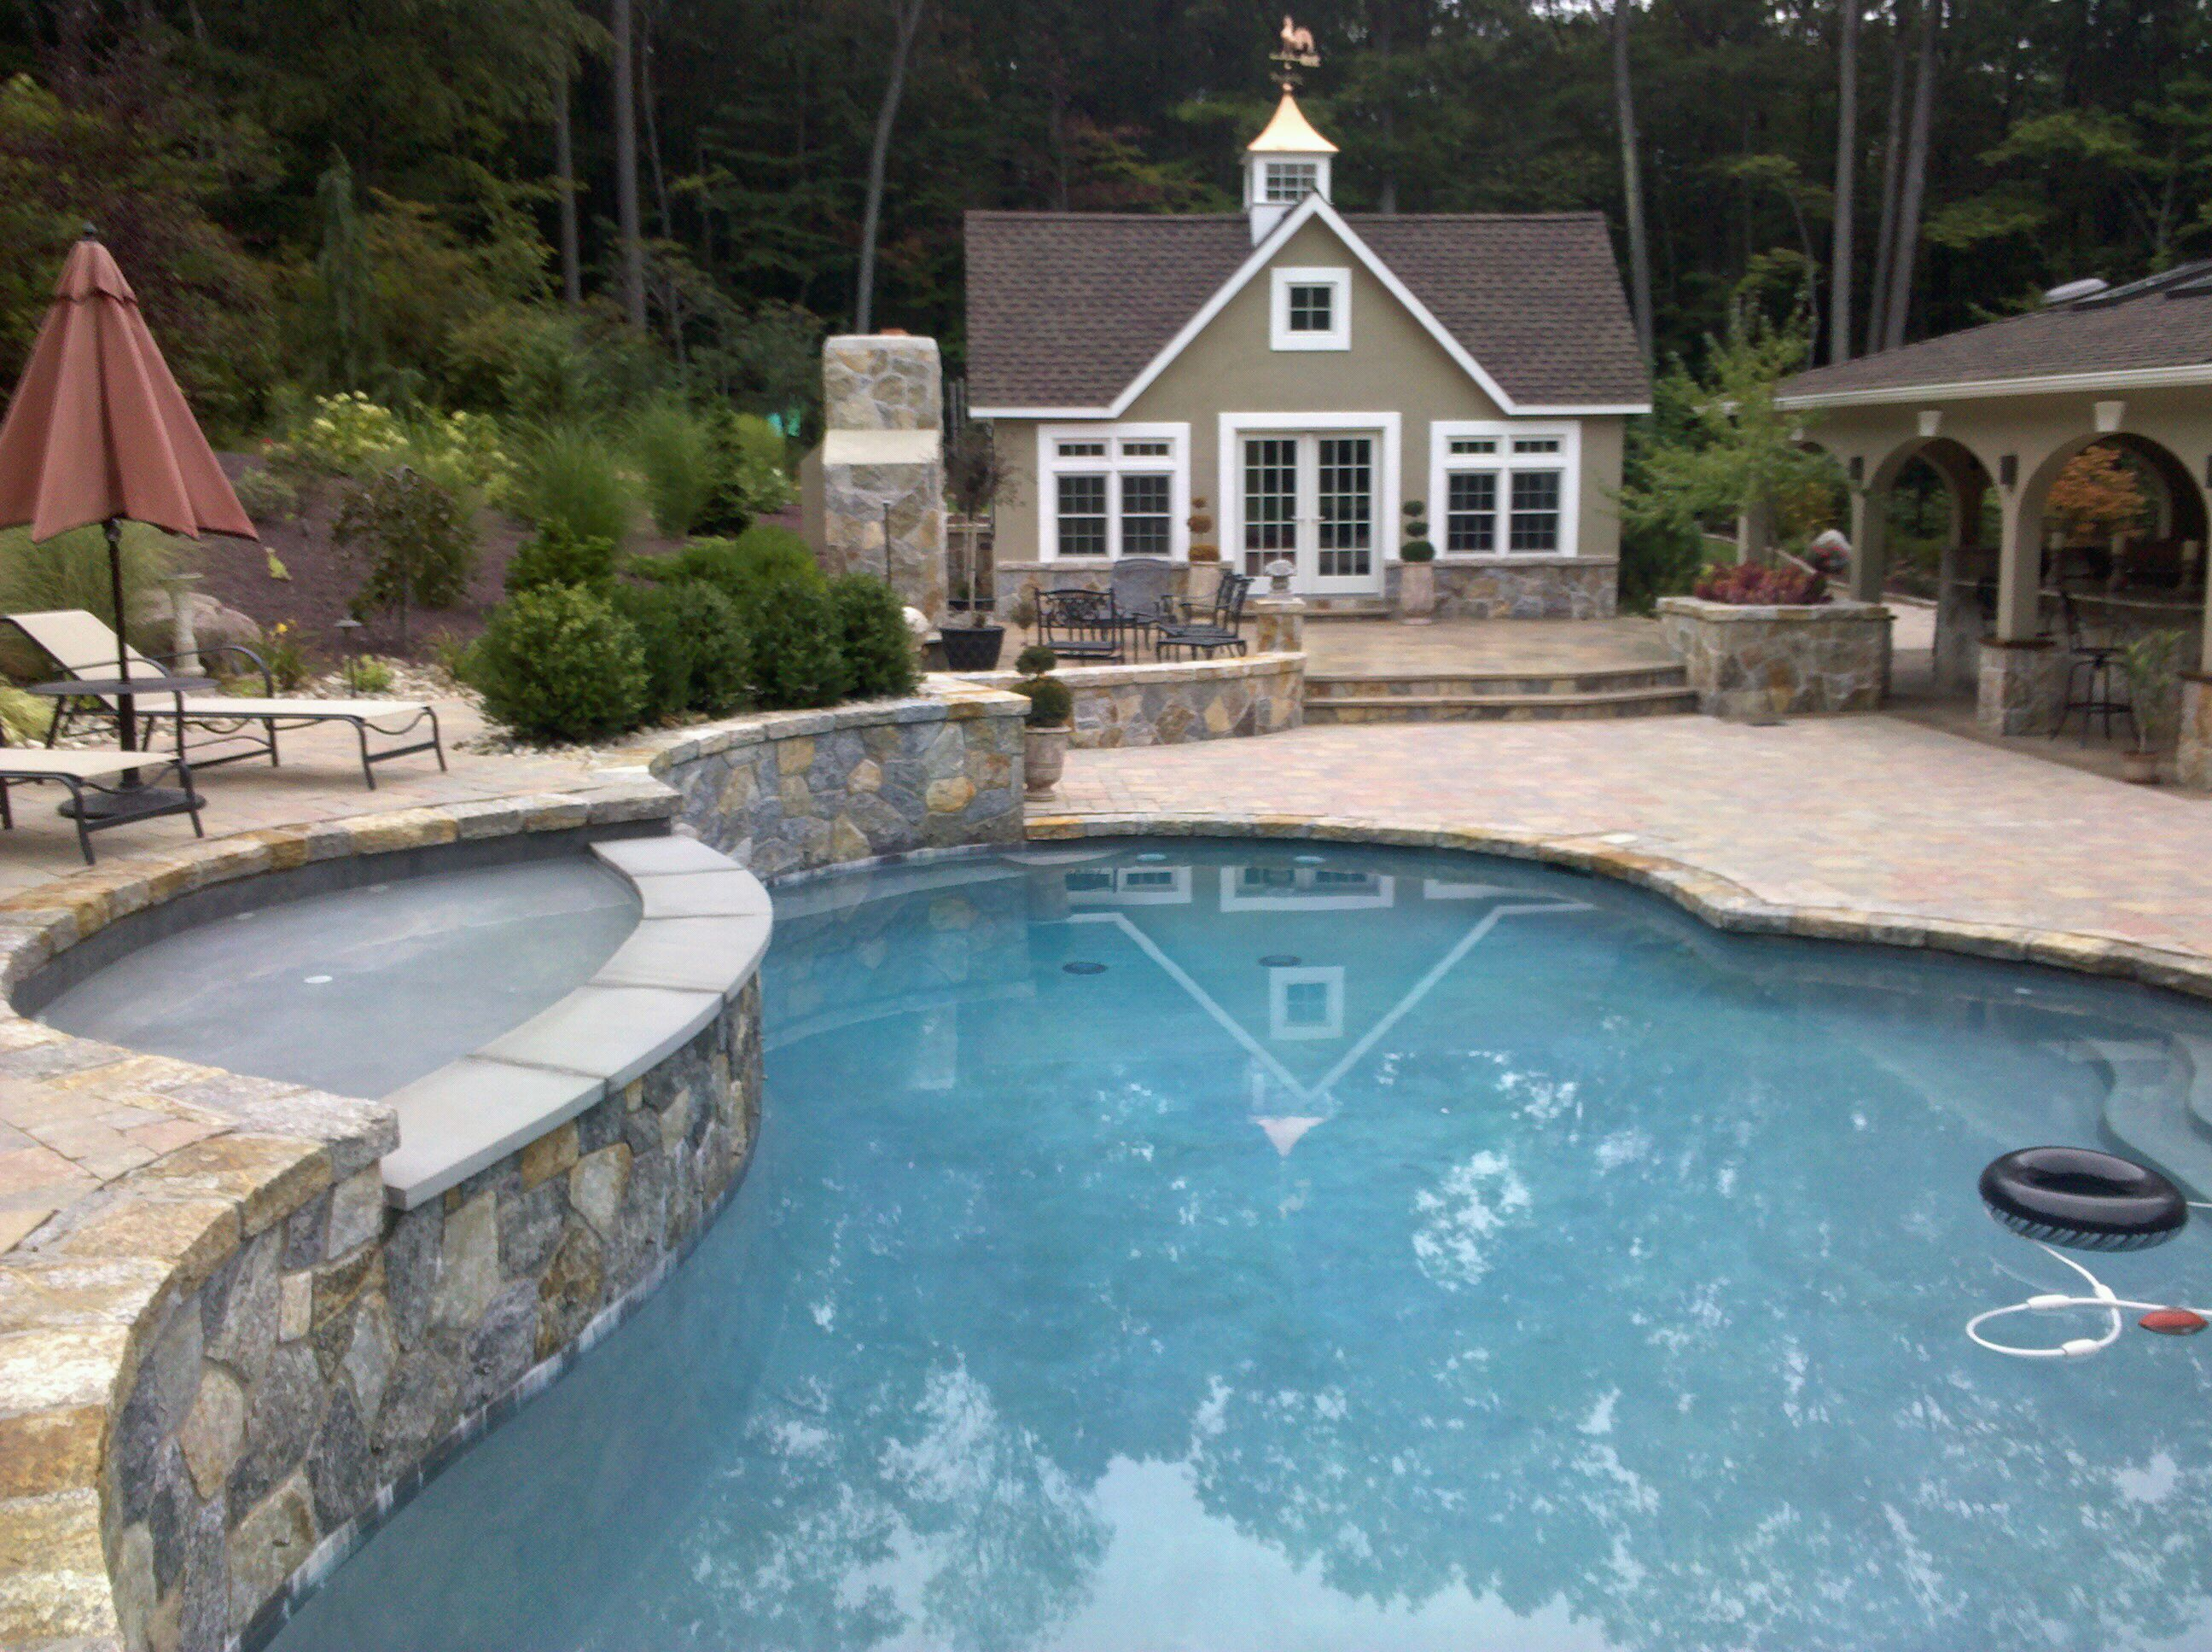 Preferred Properties Installs This Oasis Shaped Fiberglass